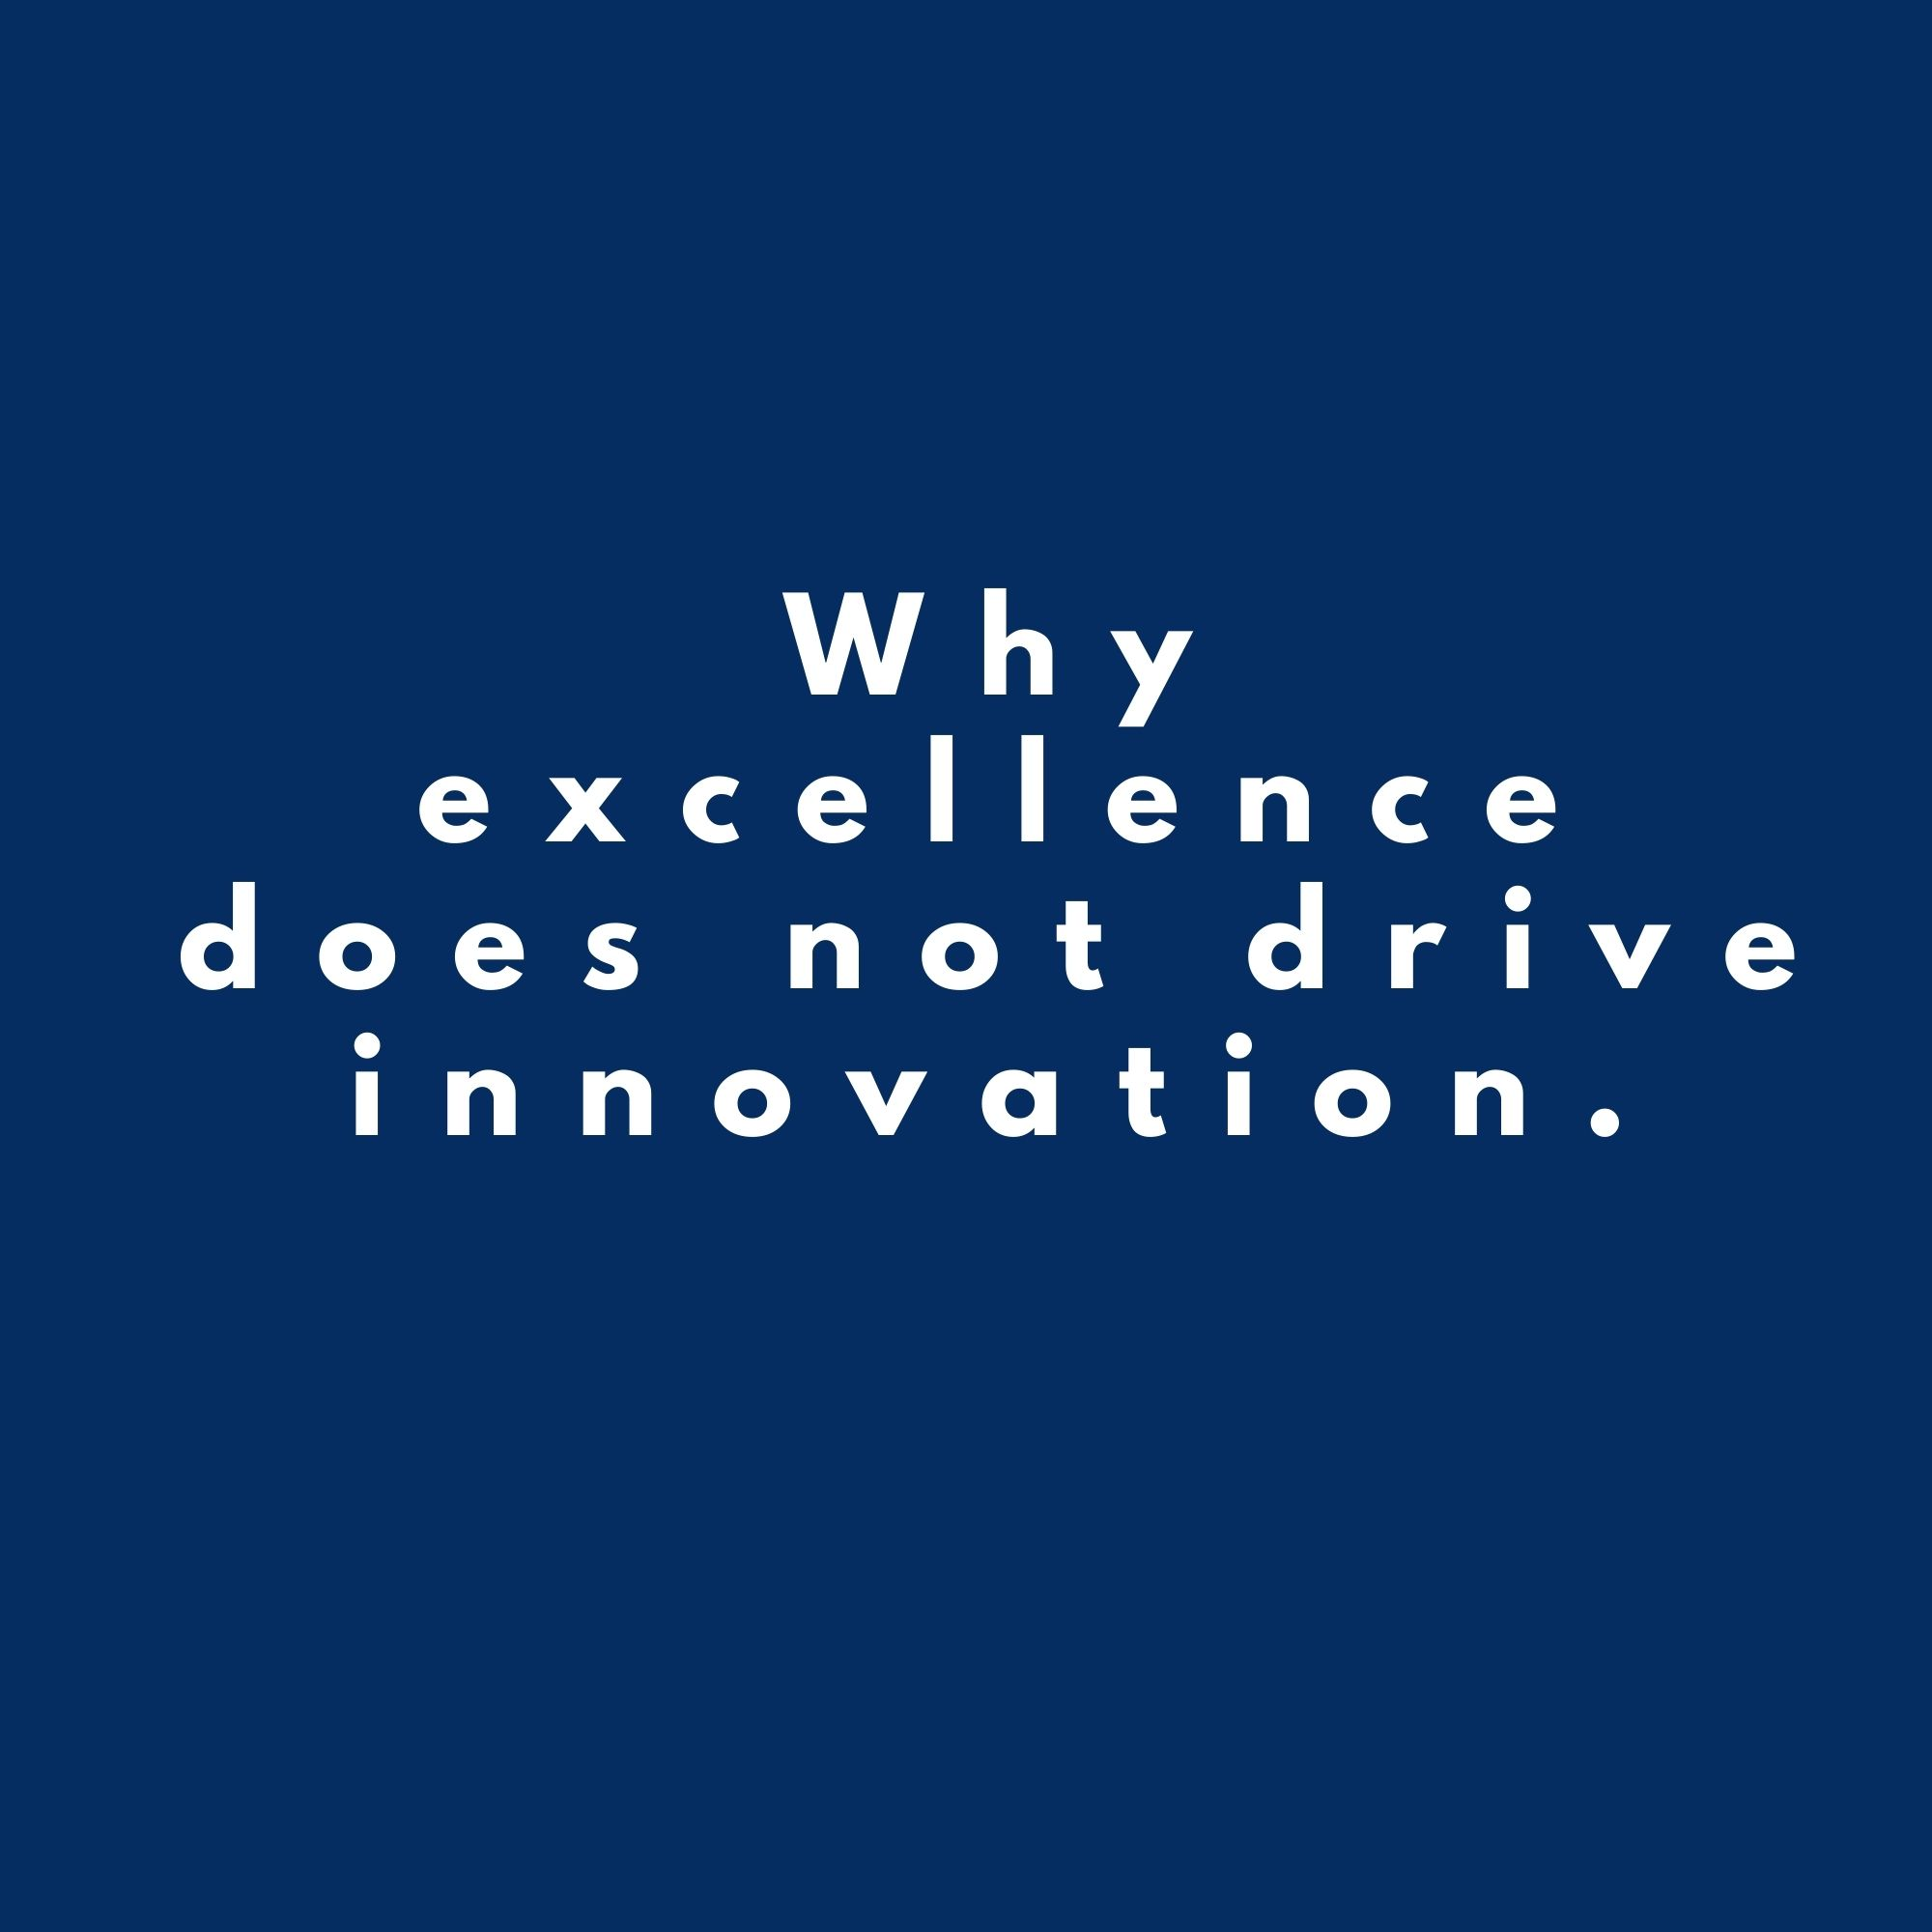 Why excellence does not drive innovation